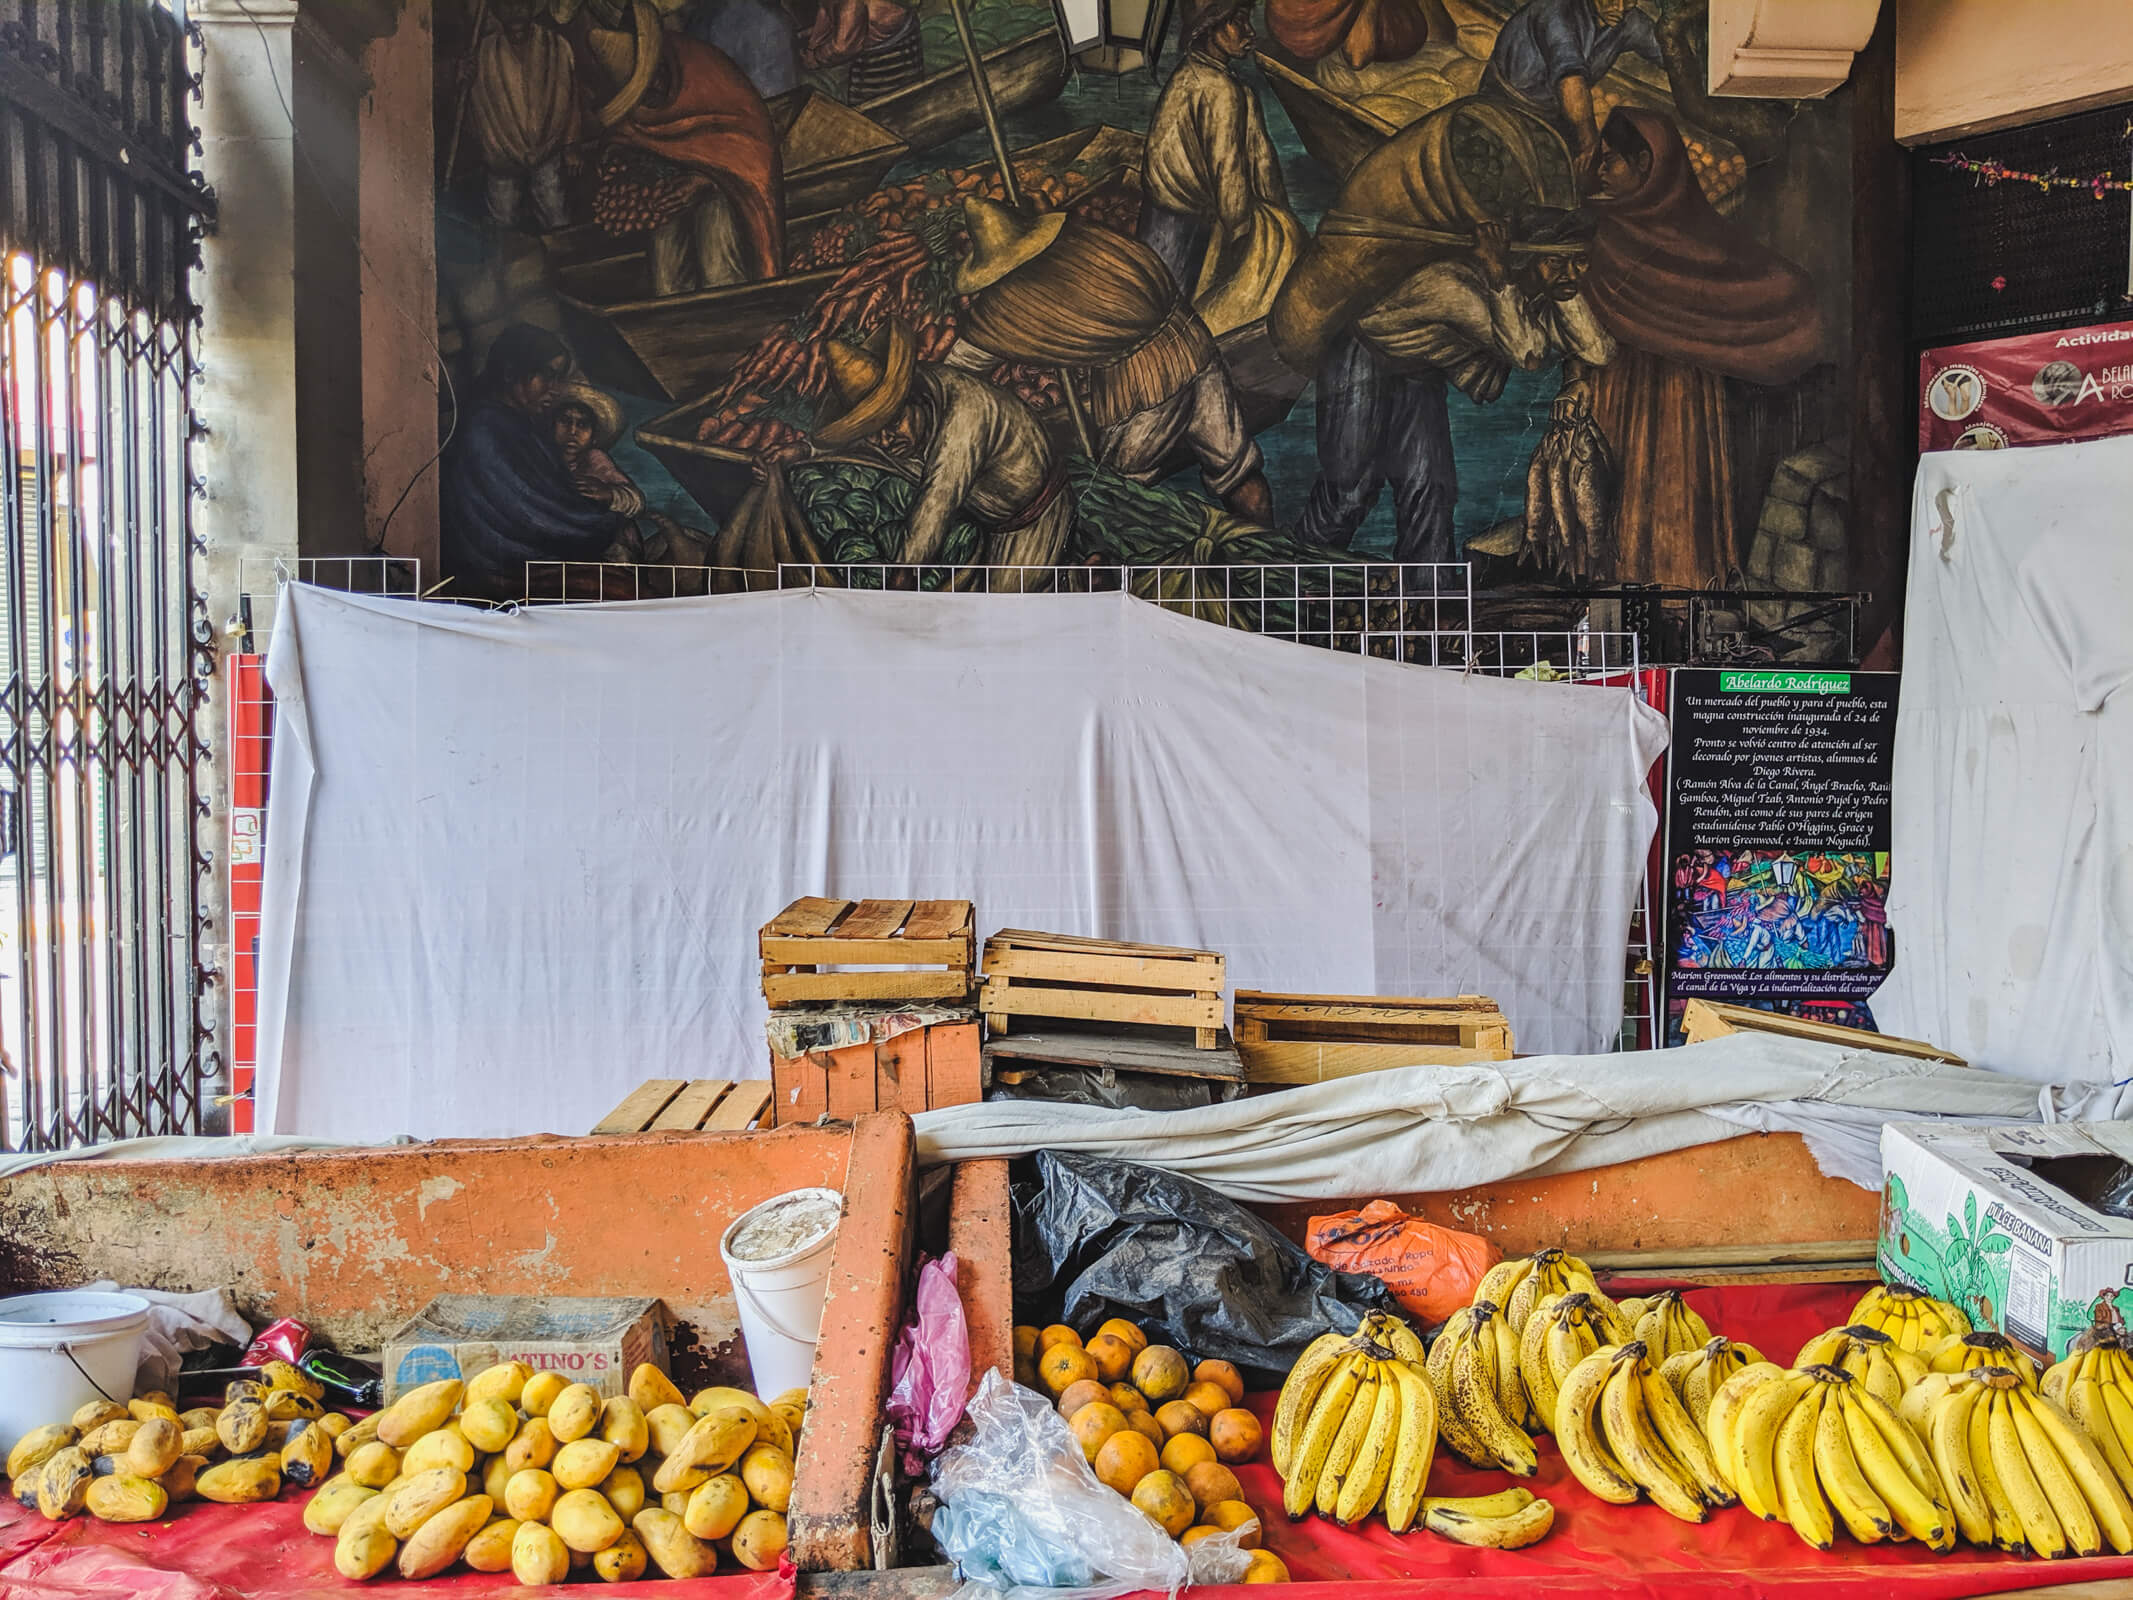 A table in a market is filled with mangos, oranges, and bananas in Mexico City